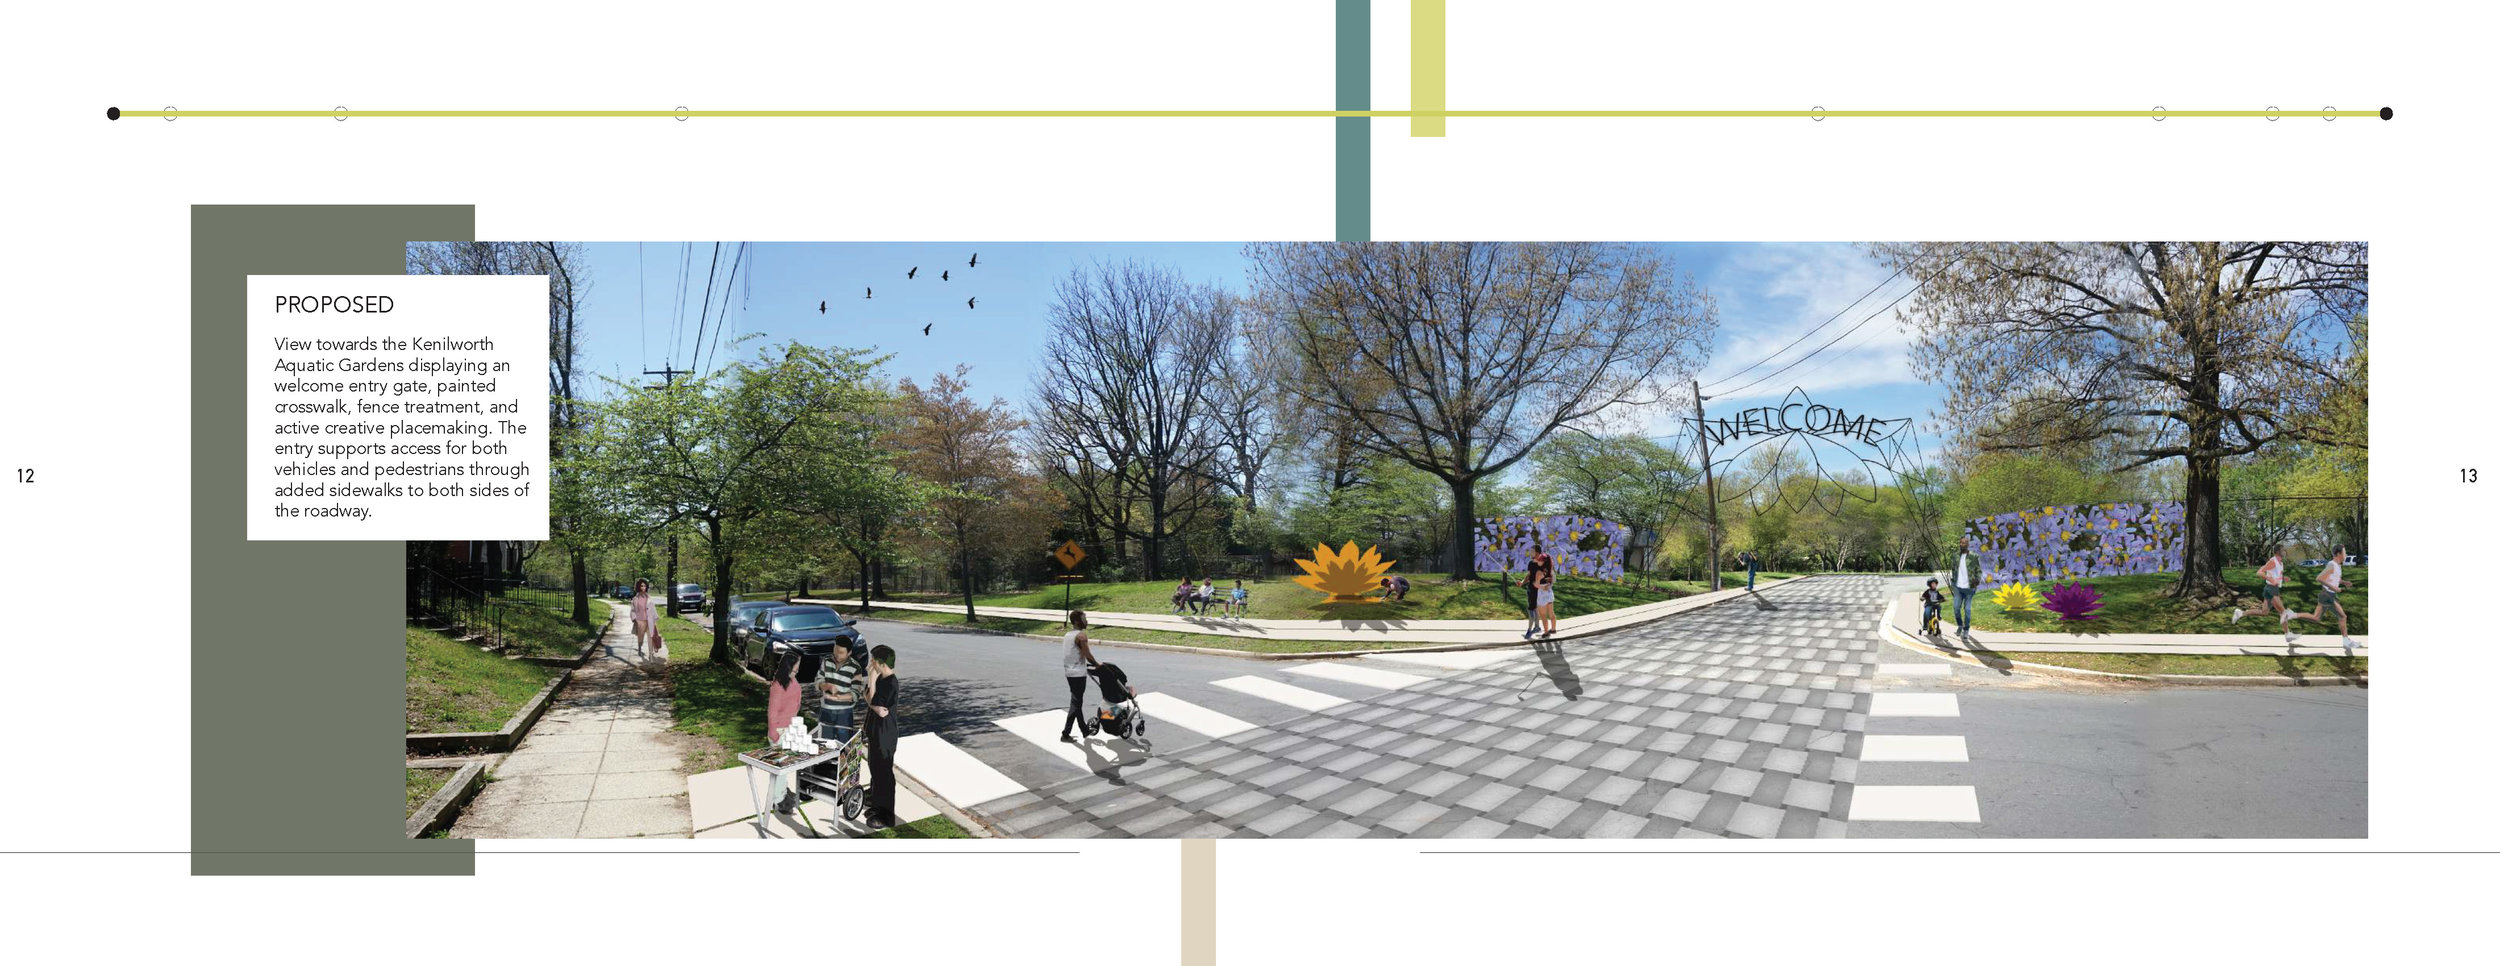 These images are from a report produced in spring 2018 by a group of graduate and undergraduate students led by Barbara Brown Wilson, professor of urban and environmental planning at the University of Virginia School of Architecture, in collaboration with buildingcommunityWORKSHOP,consultation with the Friends of Kenilworth Aquatic Gardens, and residents of the Kenilworth-Parkside neighborhoods.